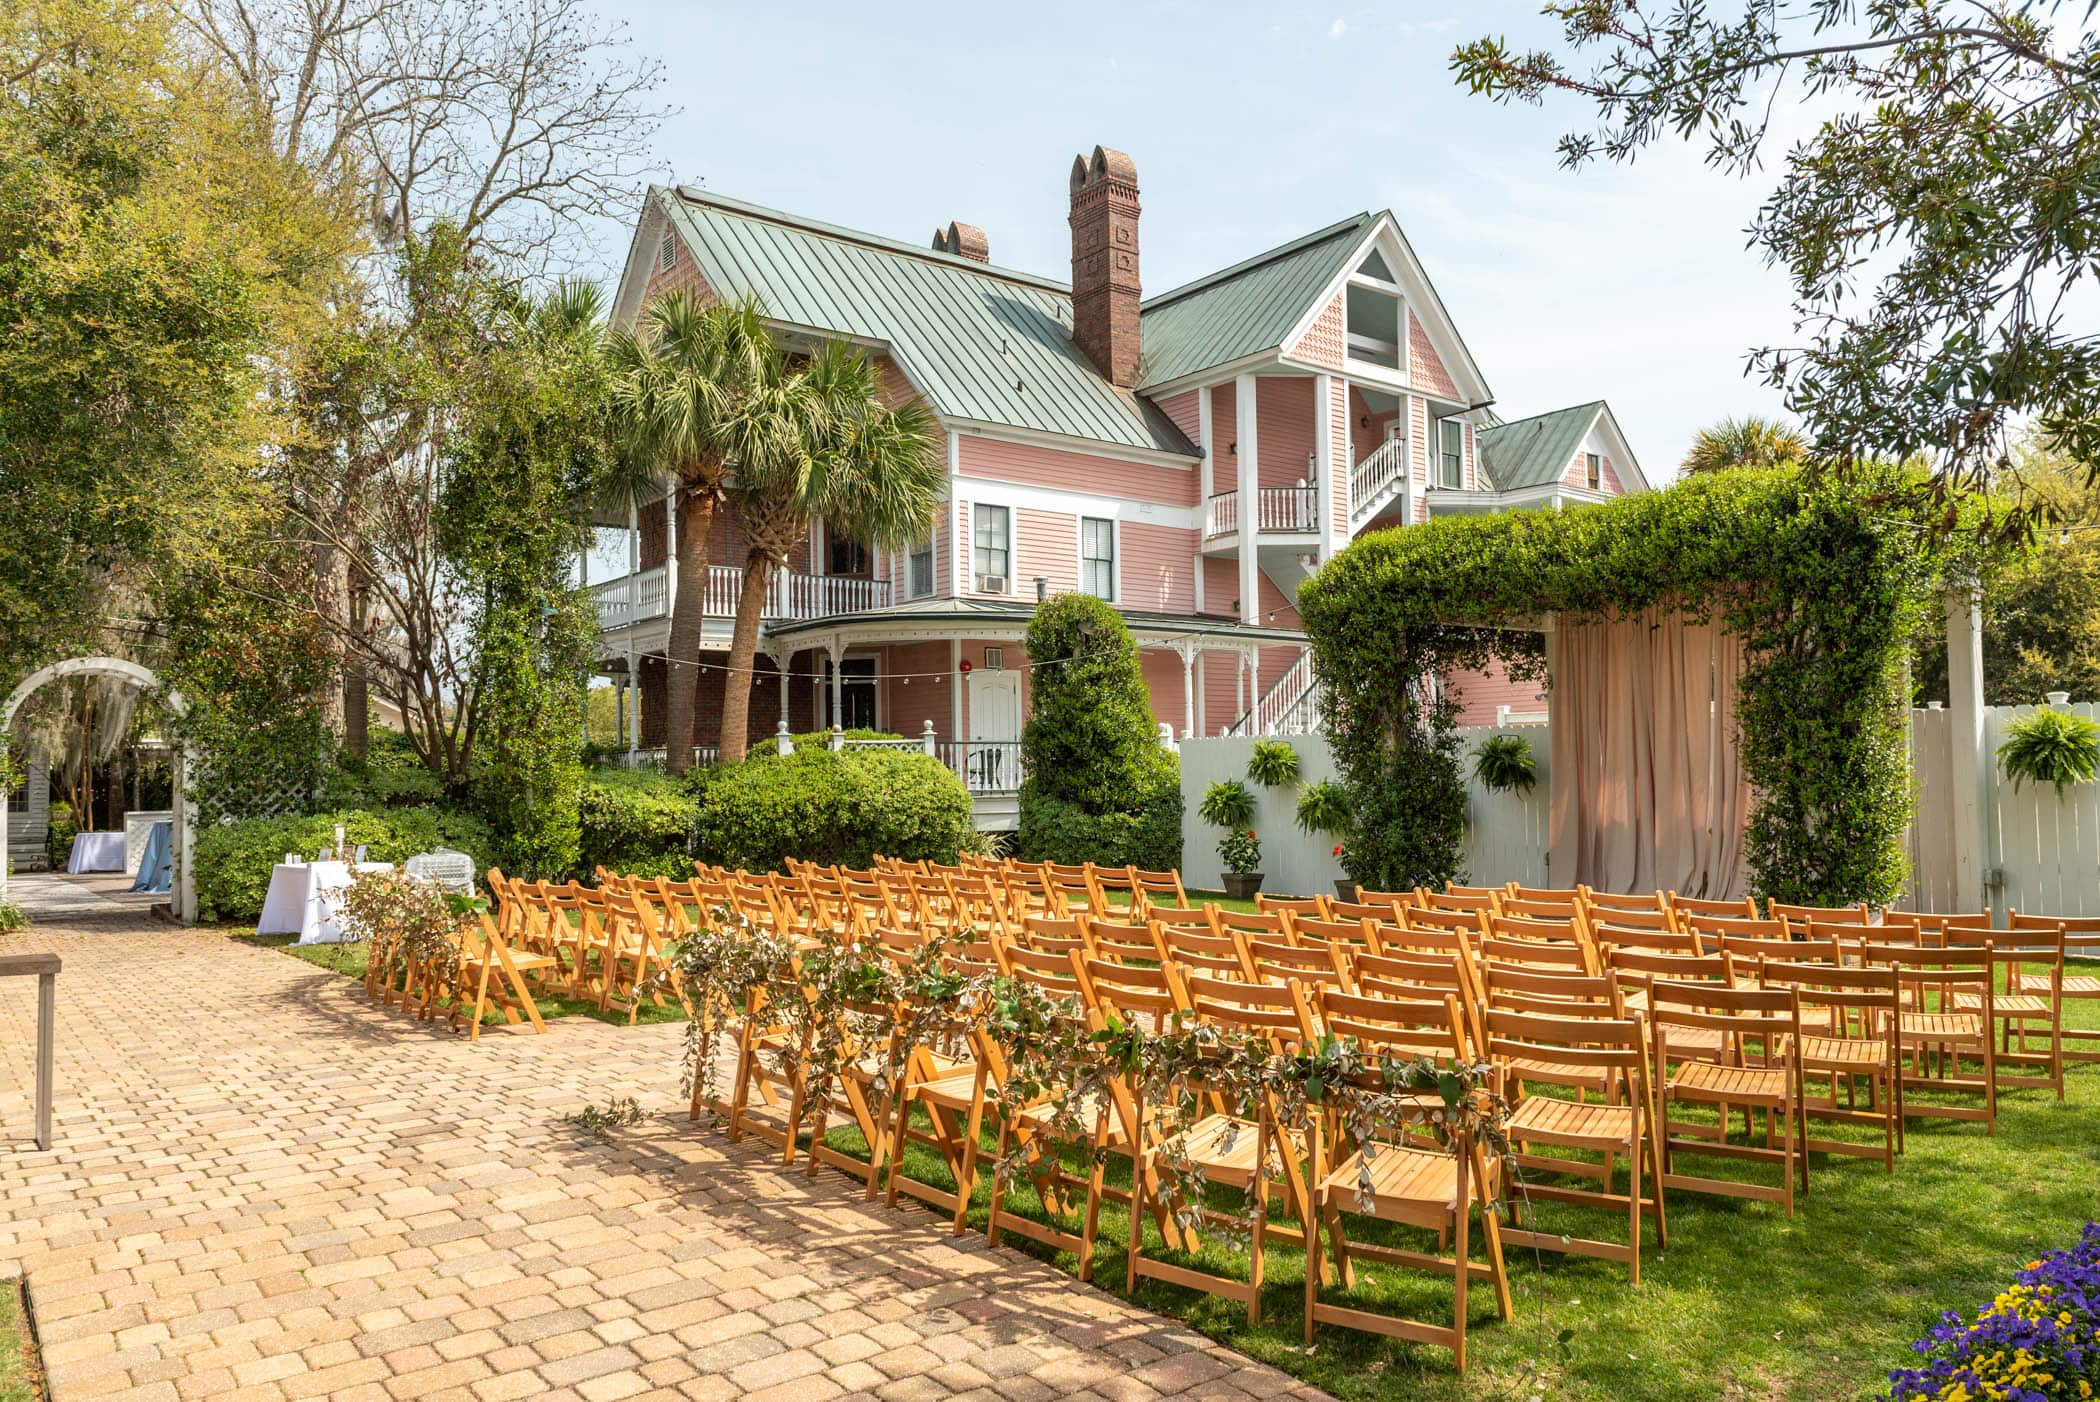 Ceremony site, The Beaufort Inn, Tabby Garden